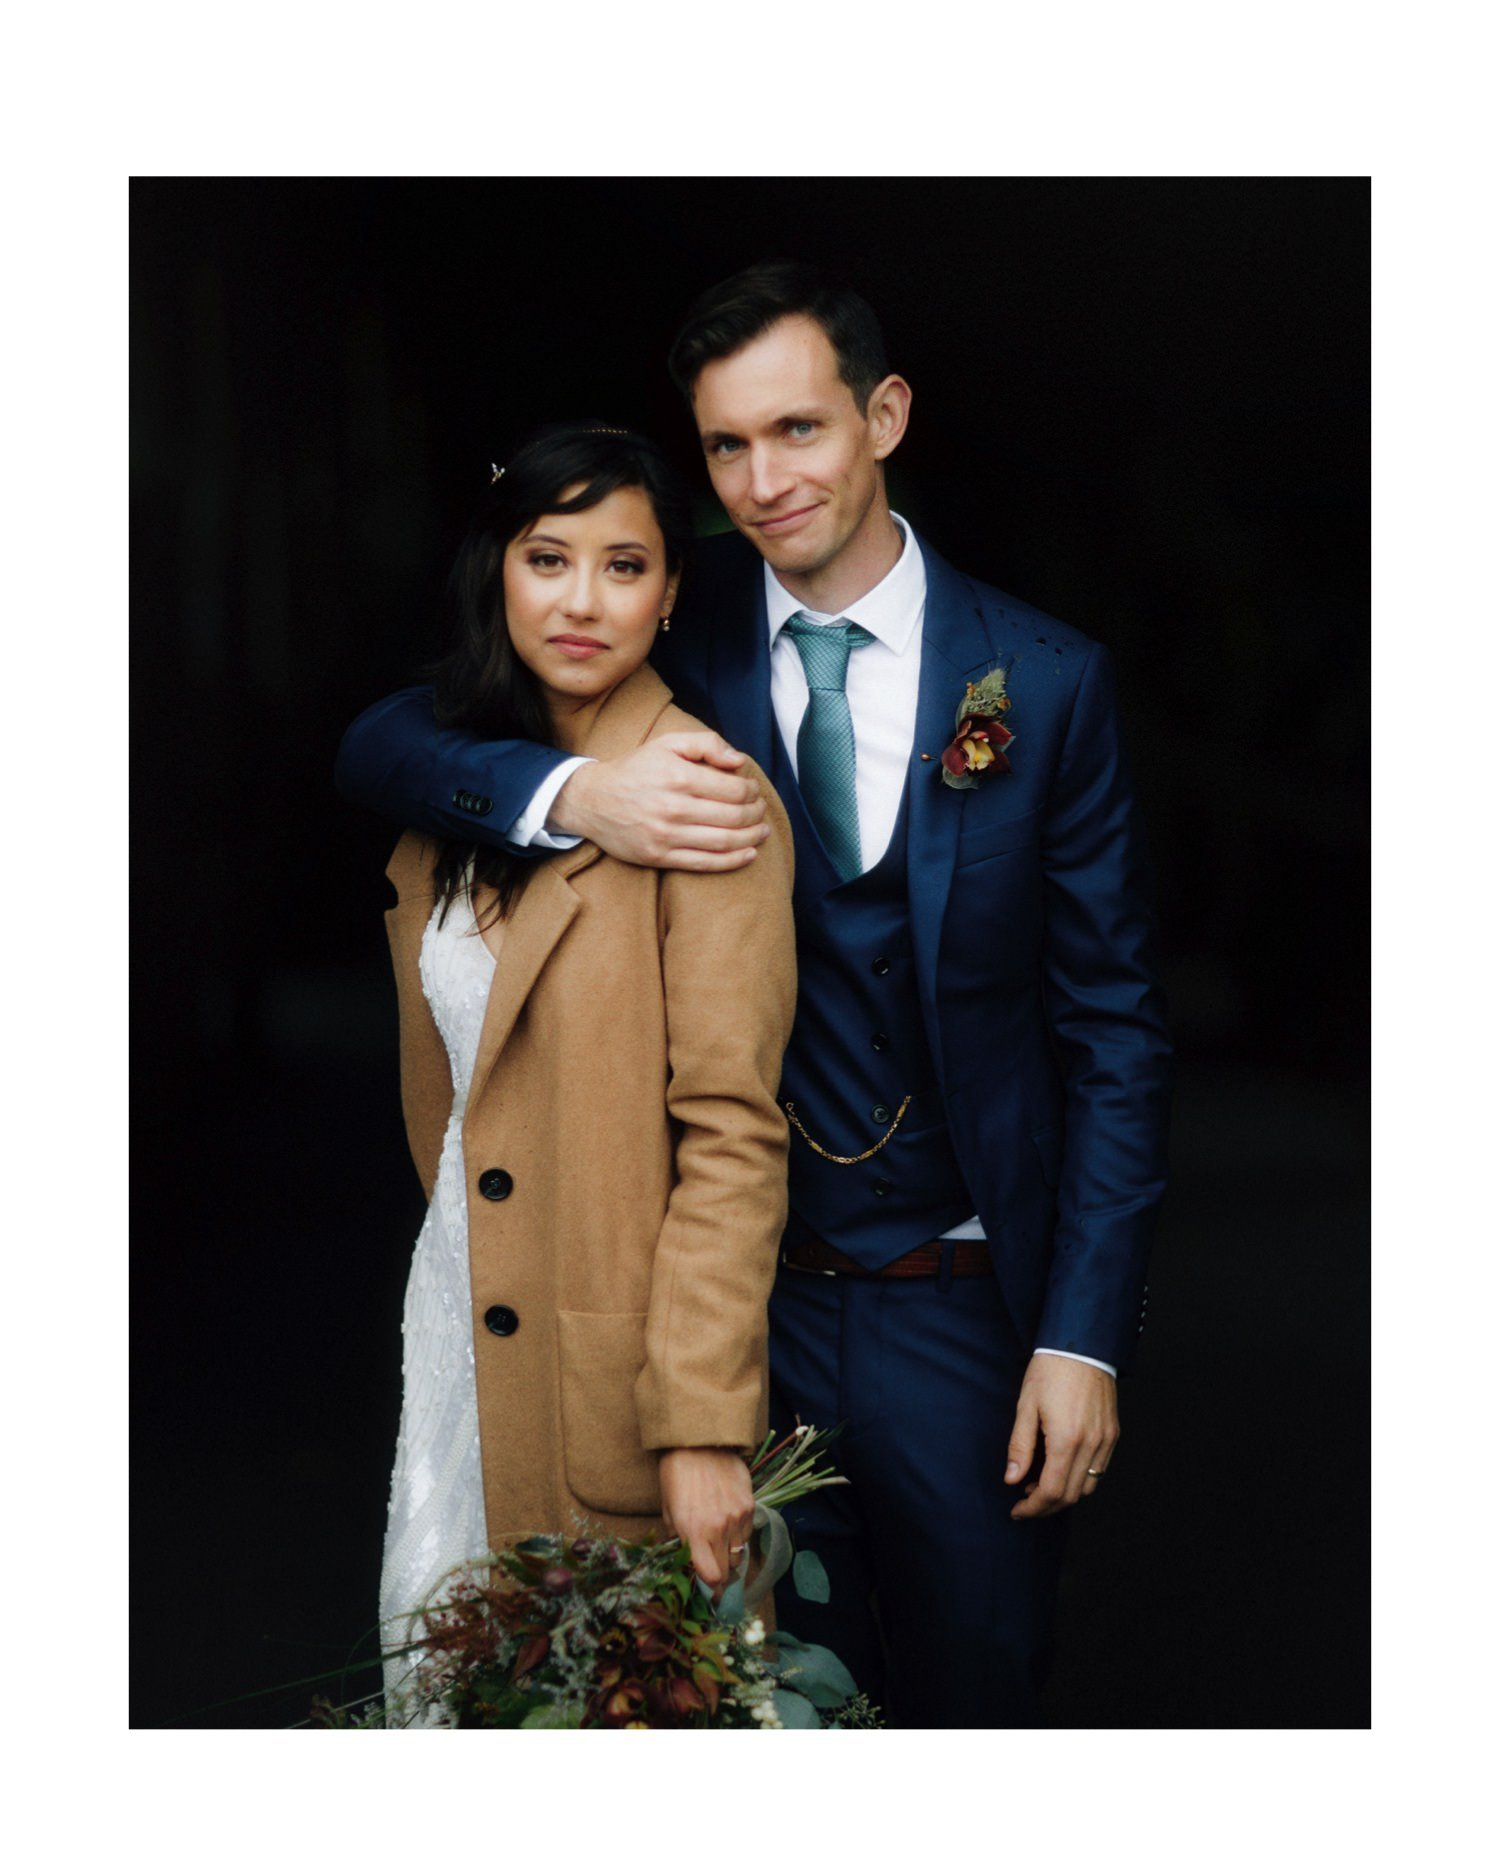 bride wearing beige wool coat and groom wearing tailored navy suit and watch chain